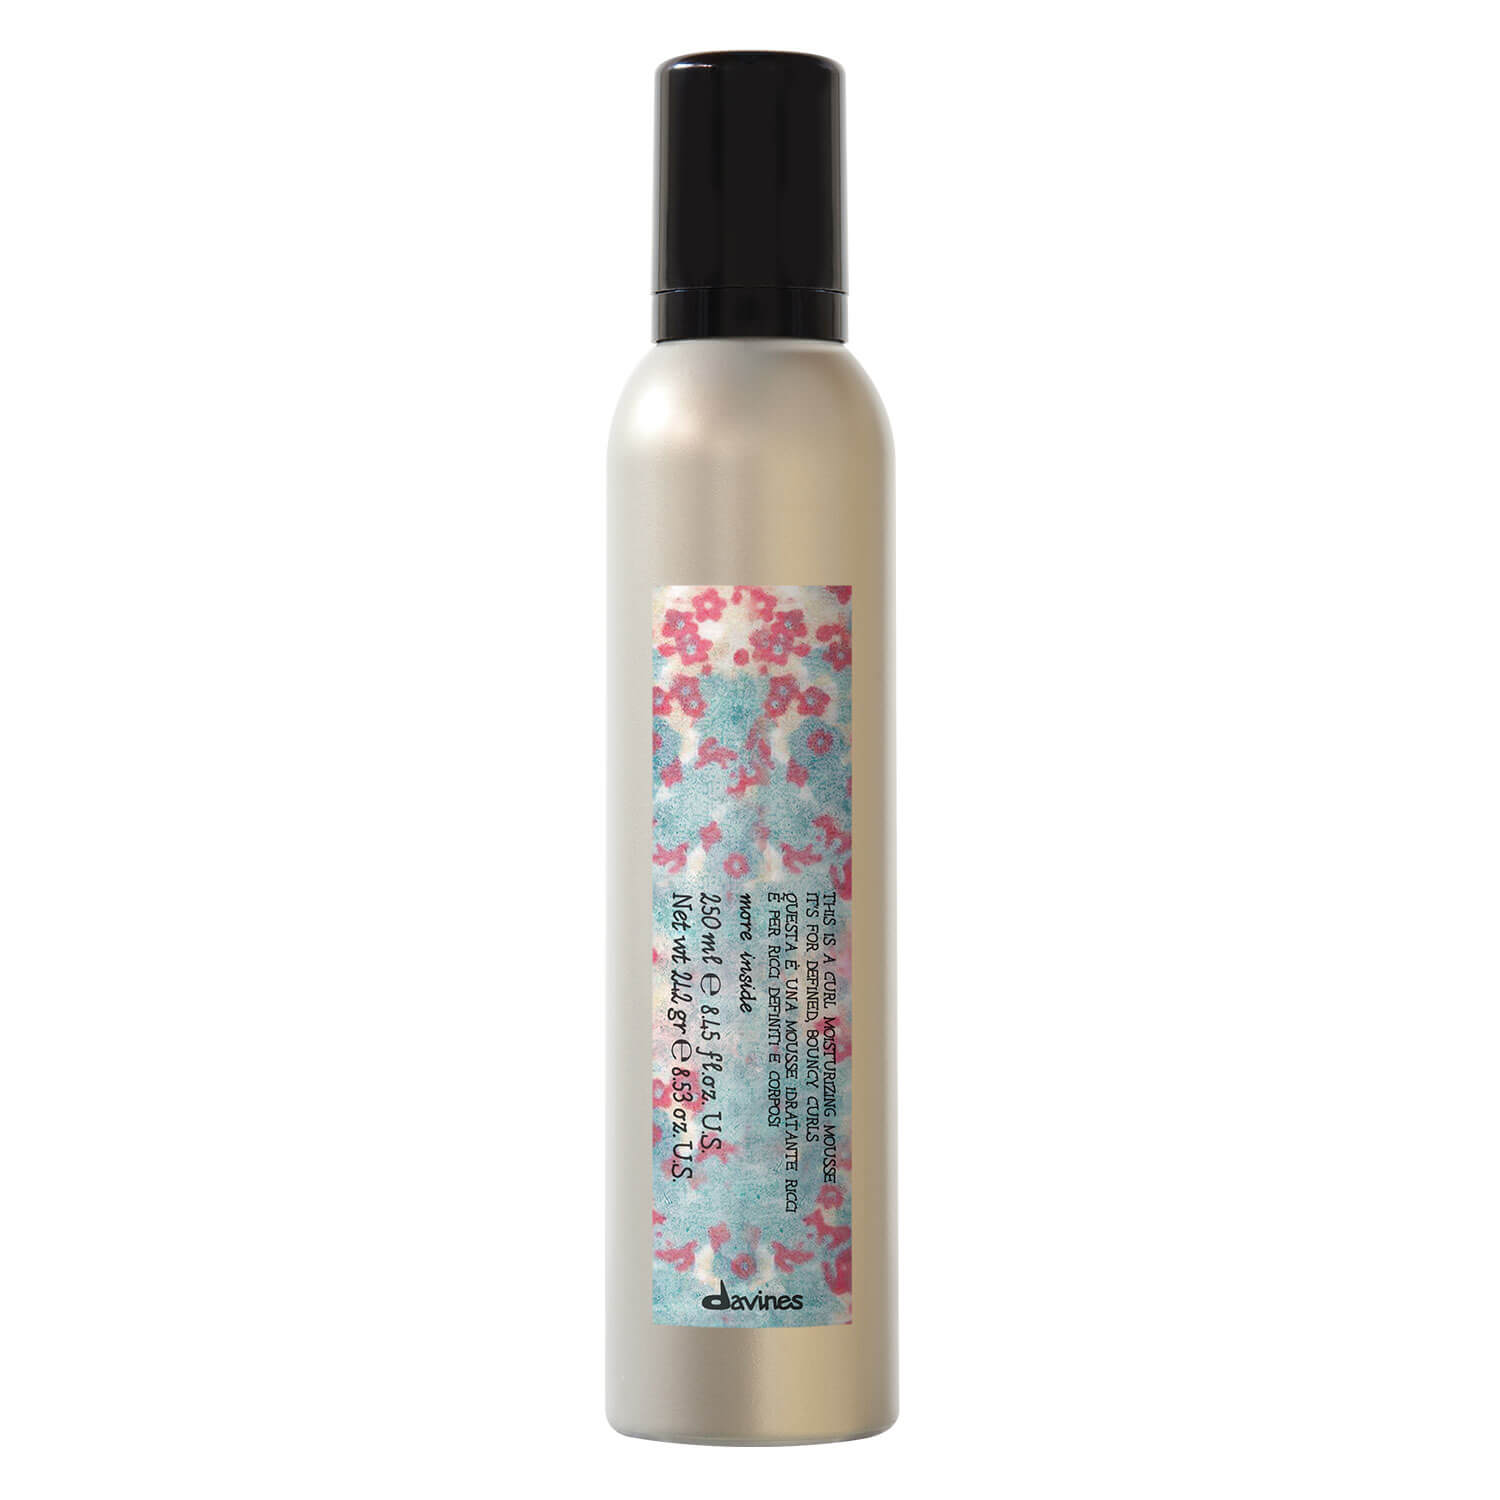 More Inside - This is a Curl Moisturizing Mousse - 250ml